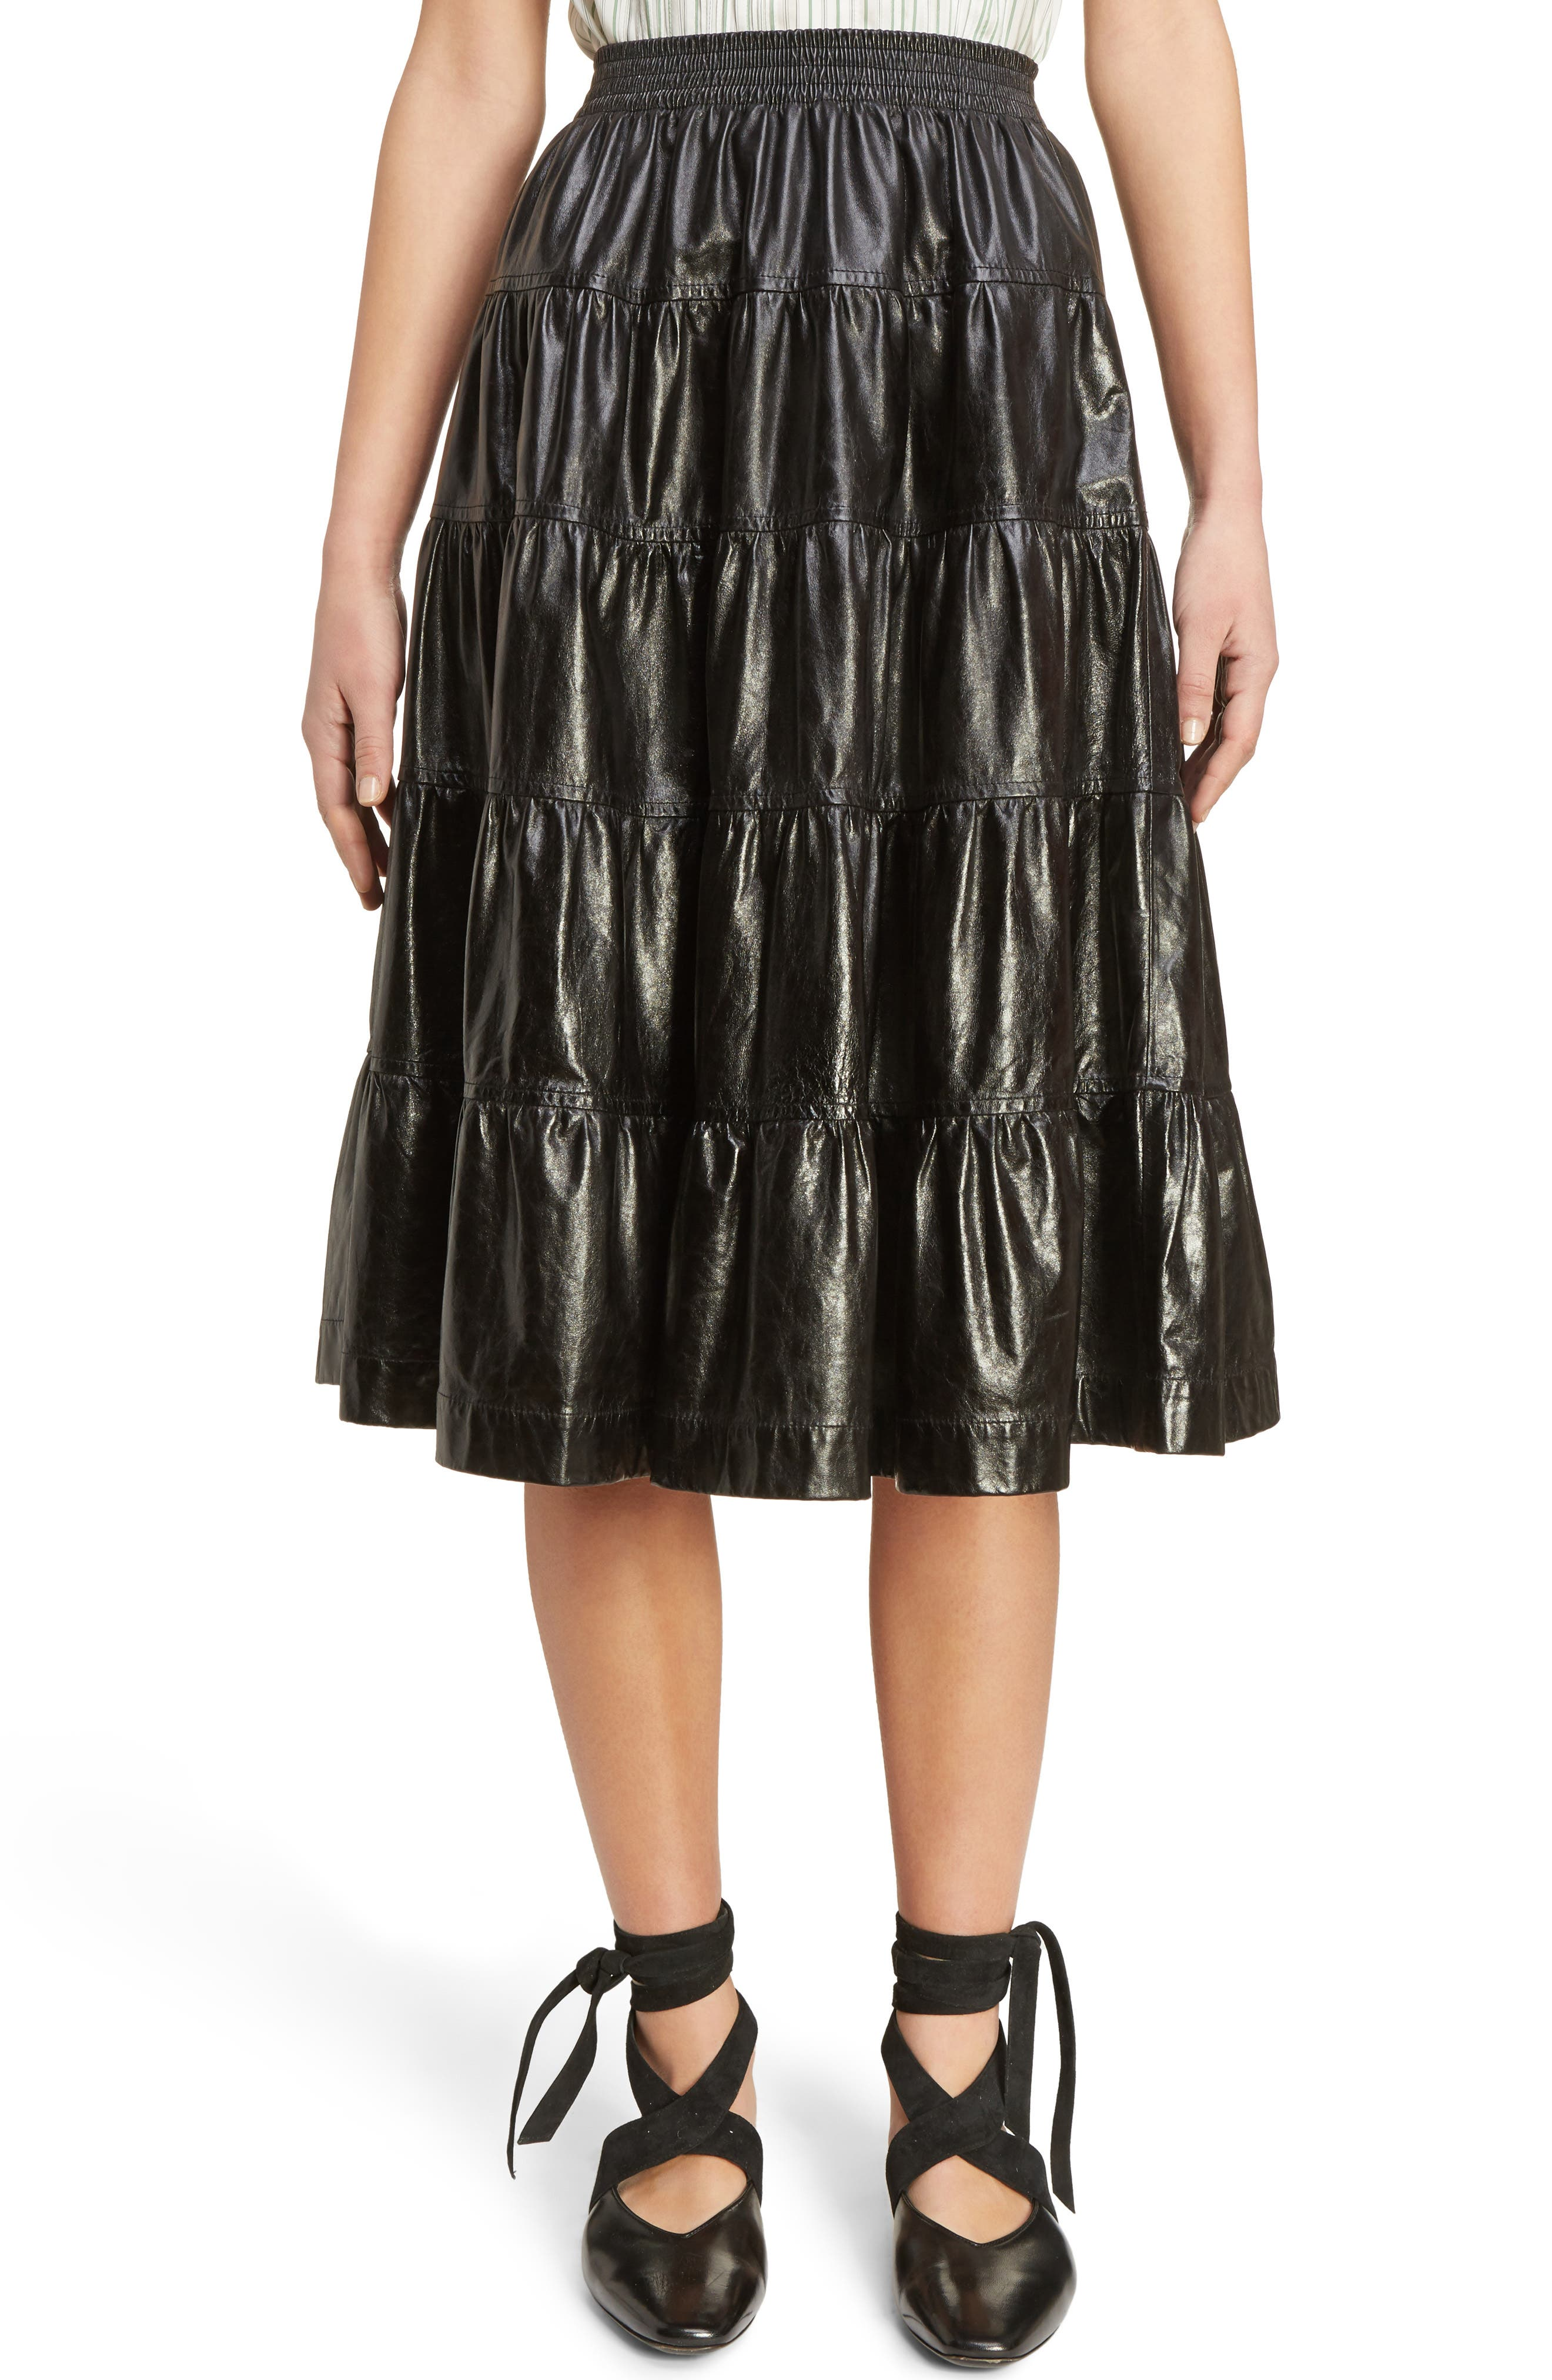 J.W.ANDERSON Tiered Leather Skirt